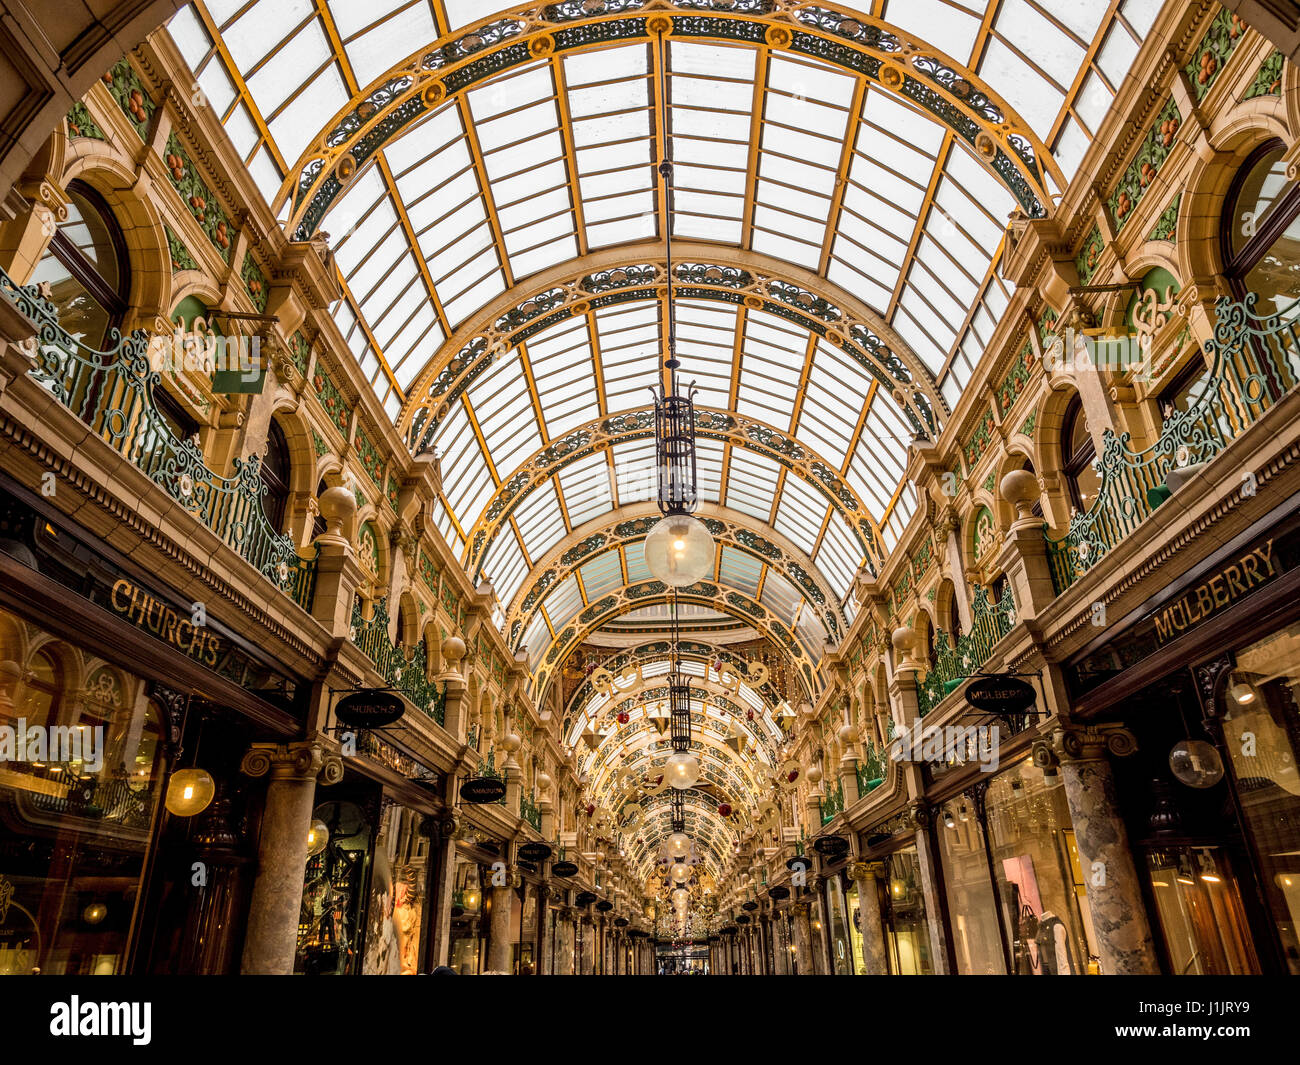 County Arcade interior at Christmas, Leeds, UK - Stock Image